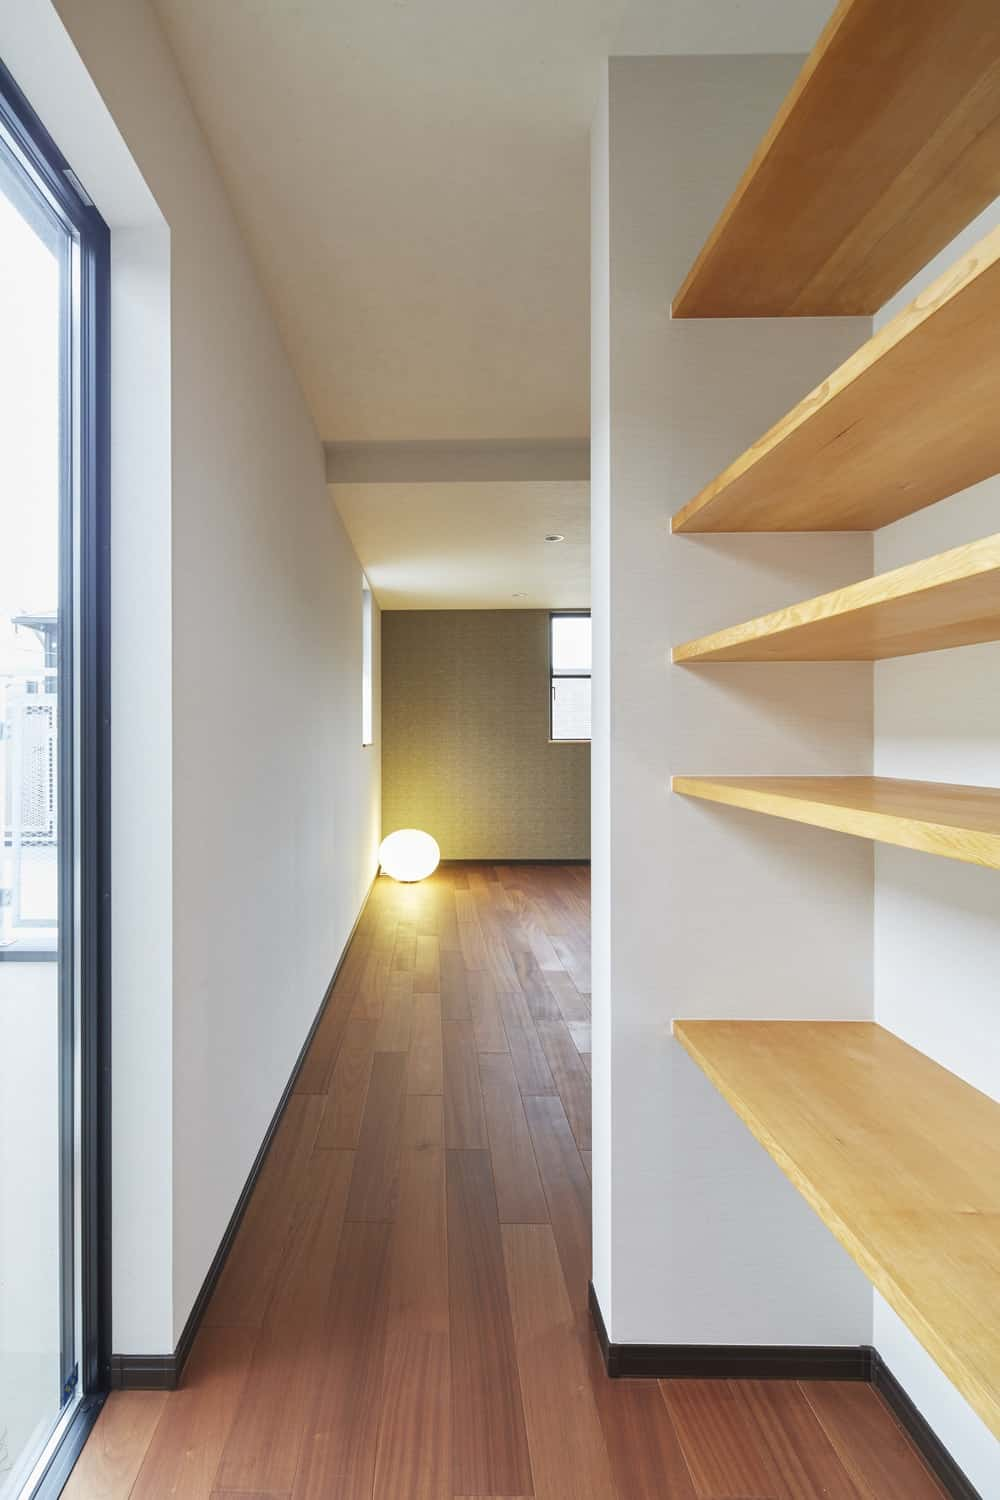 Wooden shelving in the Triple Stilt House designed by Archidance.